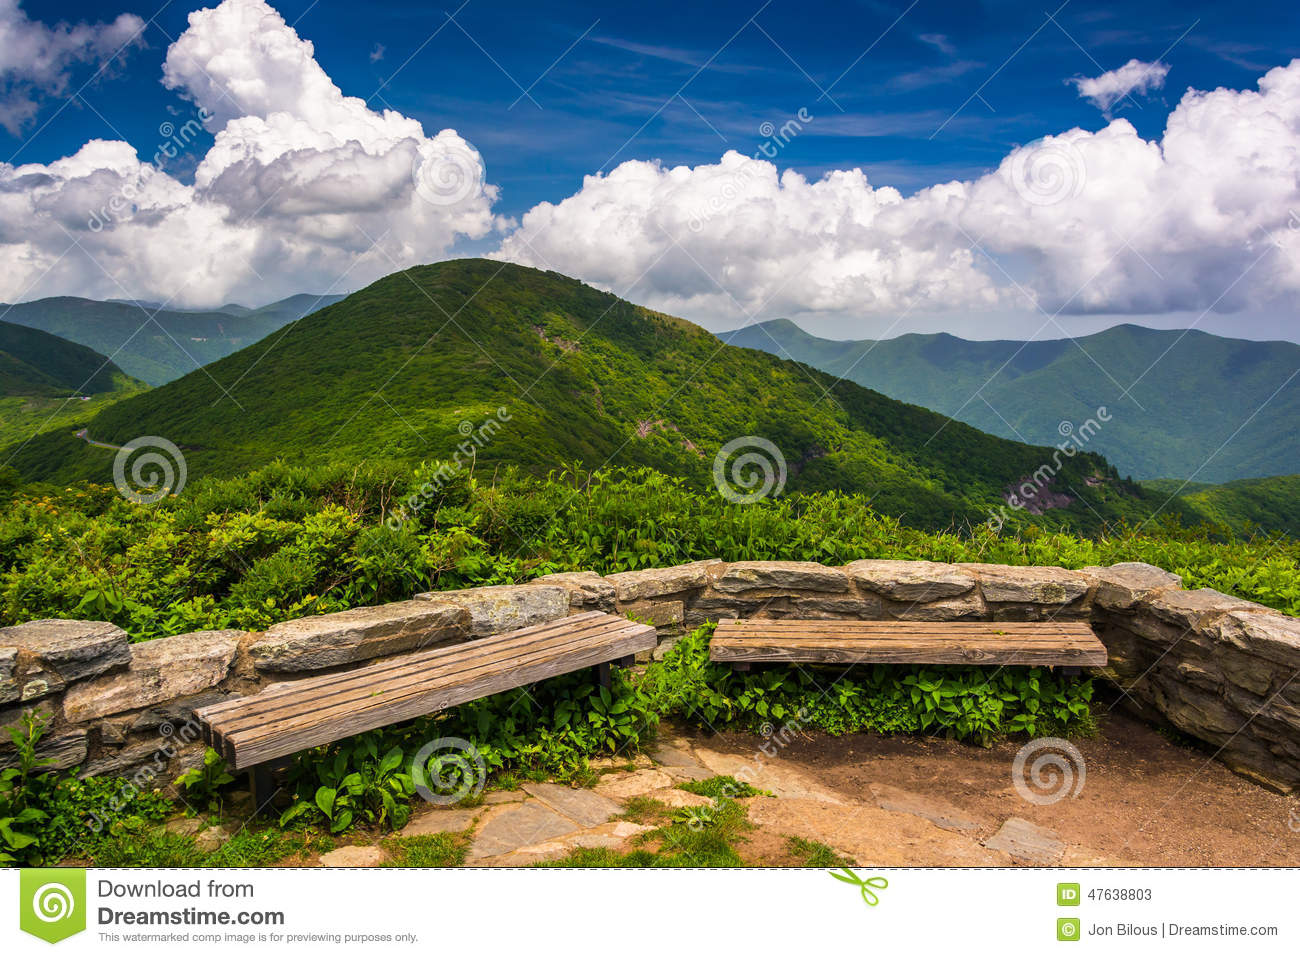 Benches and view of the Appalachians from Craggy Pinnacle